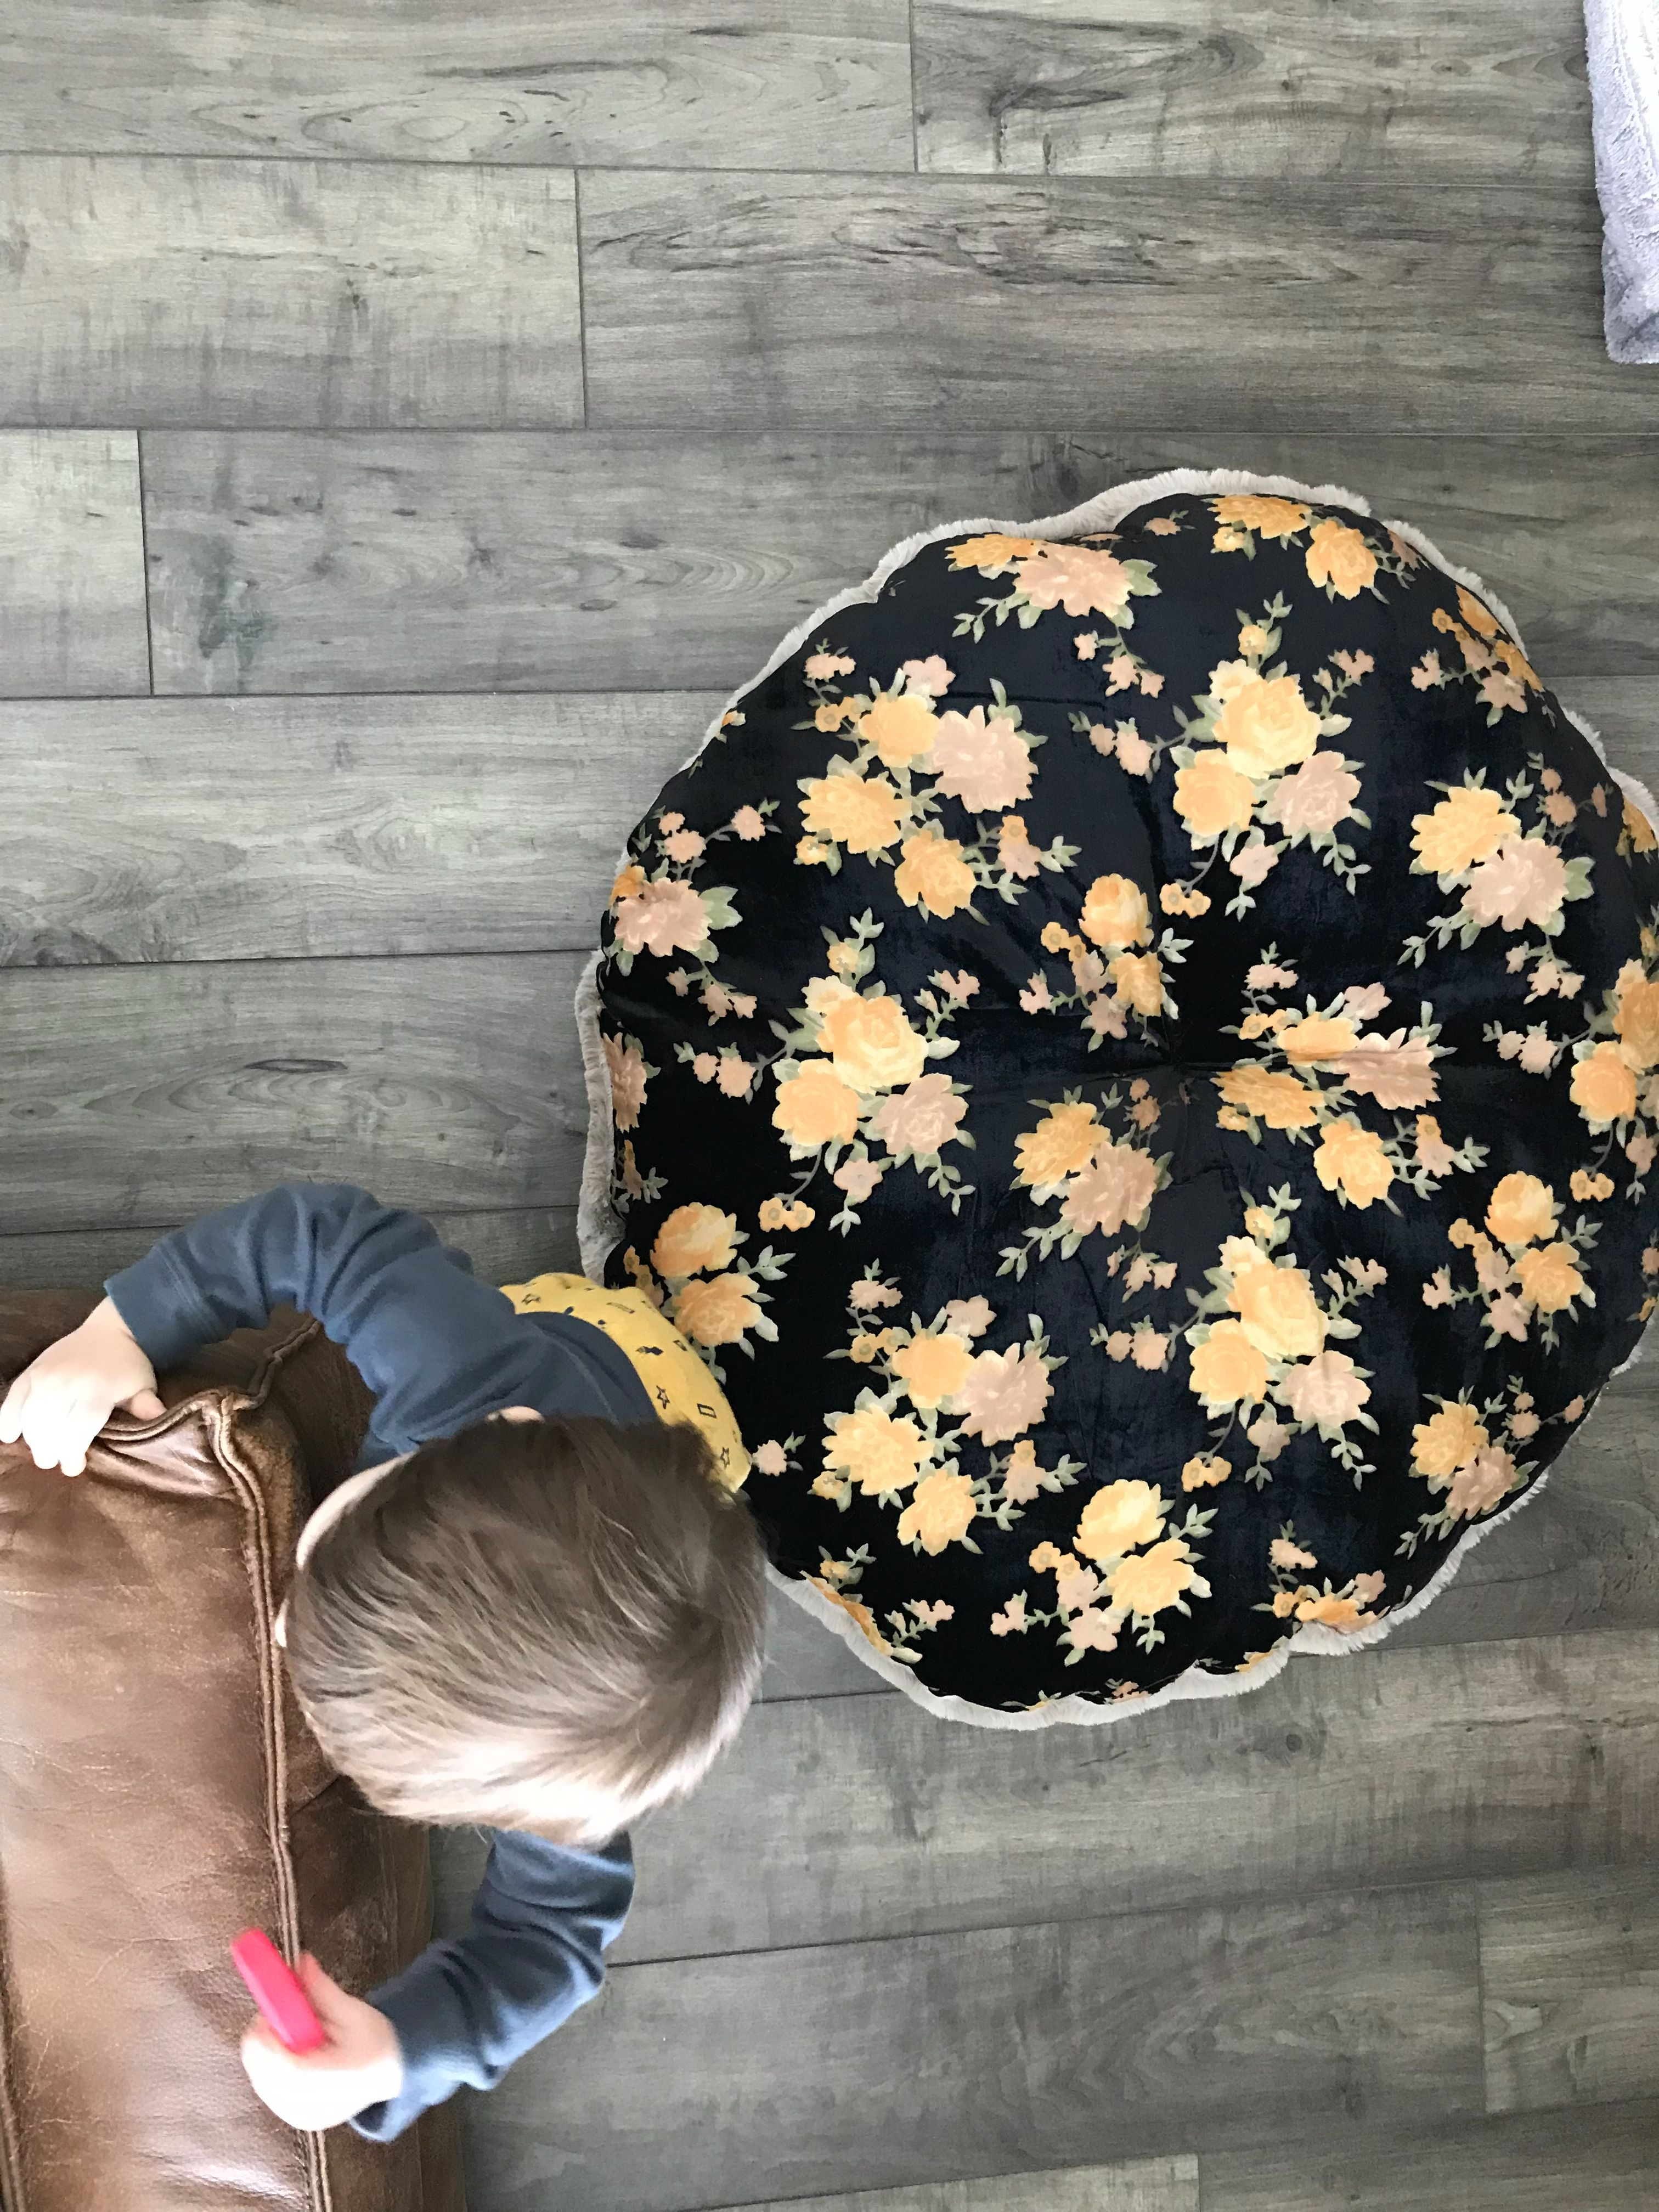 Black Velvet Floral Floor Cushion is the perfect gift for